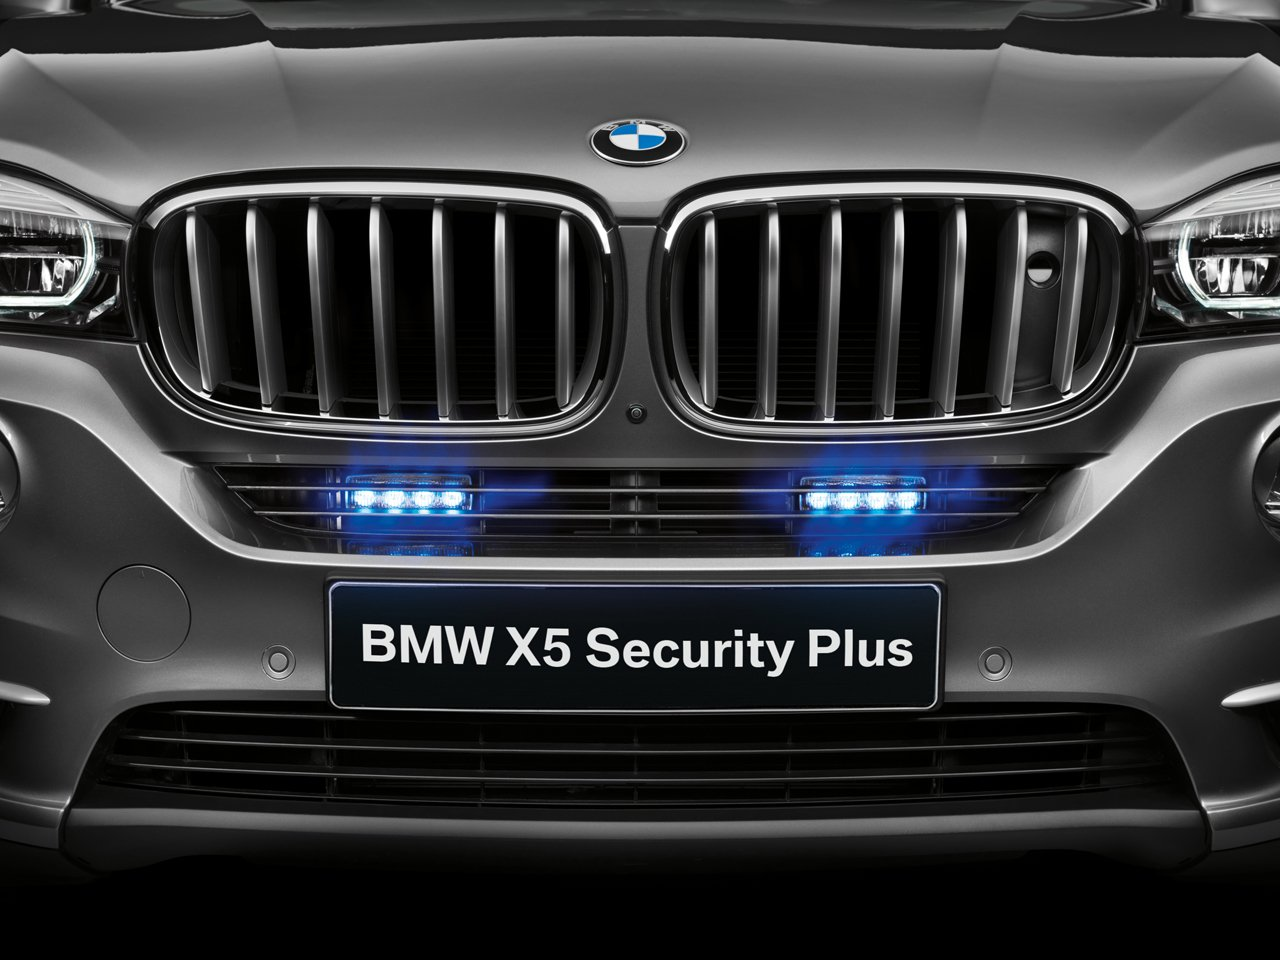 Bulletproof 2015 Bmw X5 Security Plus For An Oligarch On